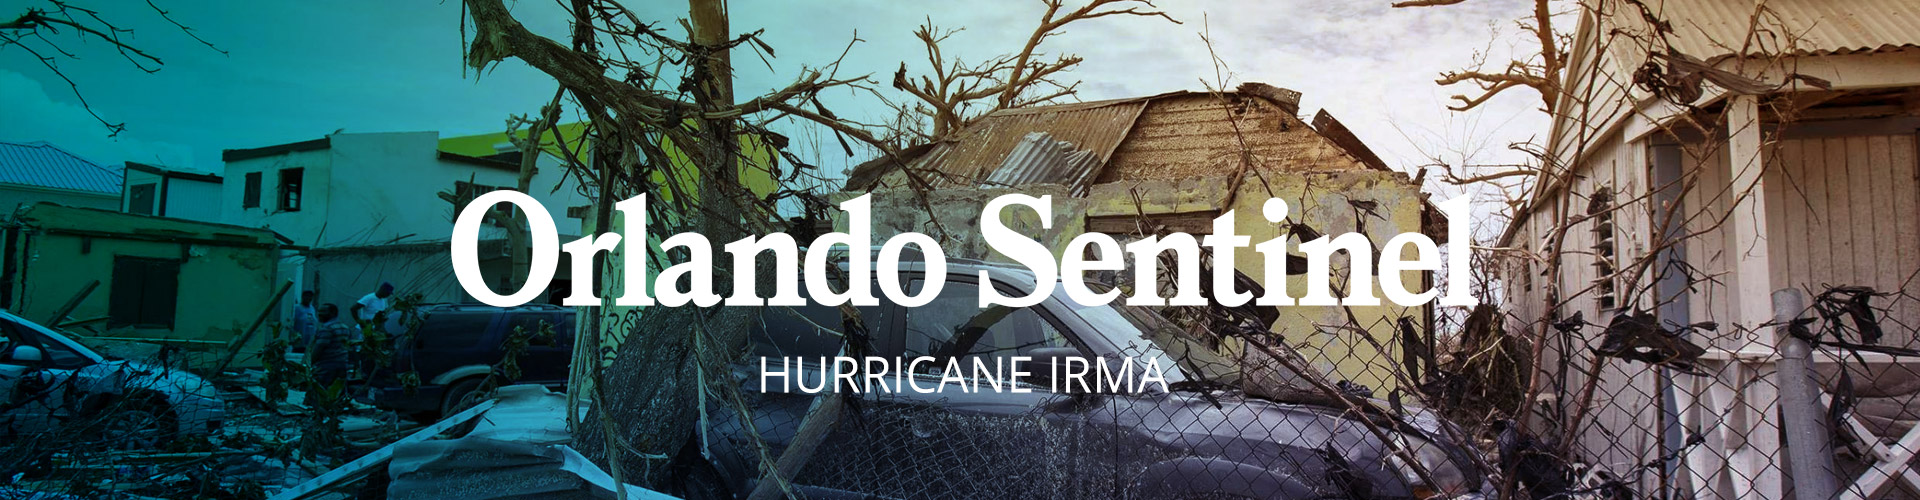 Orlando Sentinel Launch Special Edition